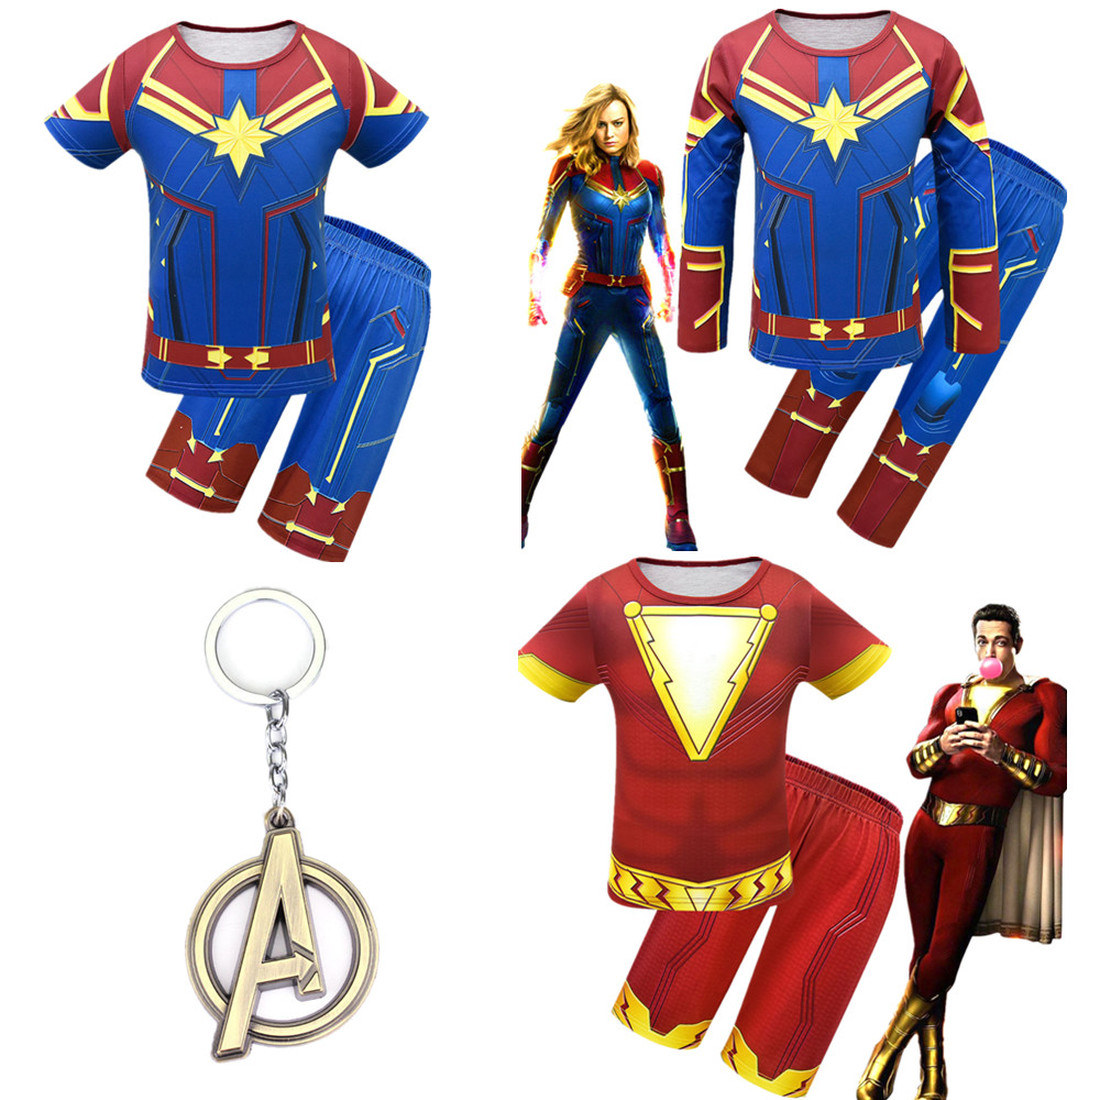 2019-new-avengers-4-children's-sets-children-cosplay-captain-font-b-marvel-b-font-costume-halloween-party-thunder-shazan-cosplay-boys-clothes